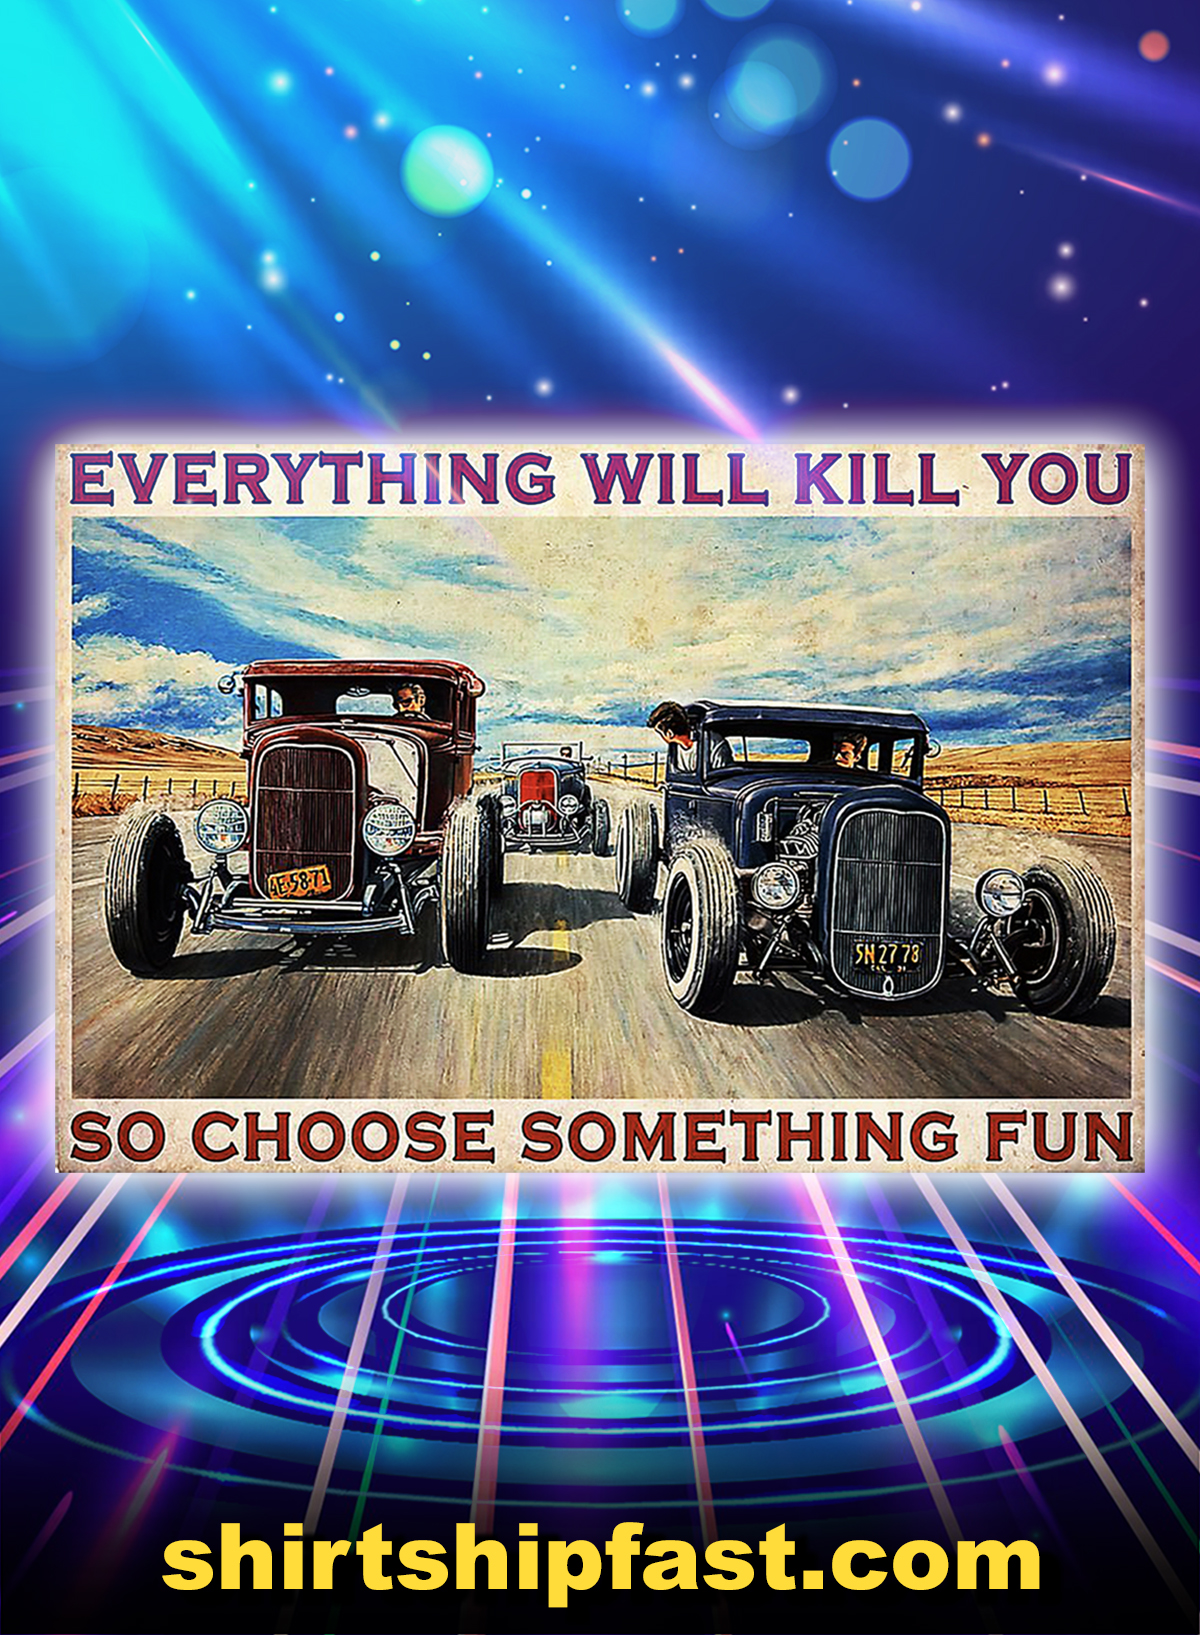 Everything will kill you so choose something fun hot rod poster - A1